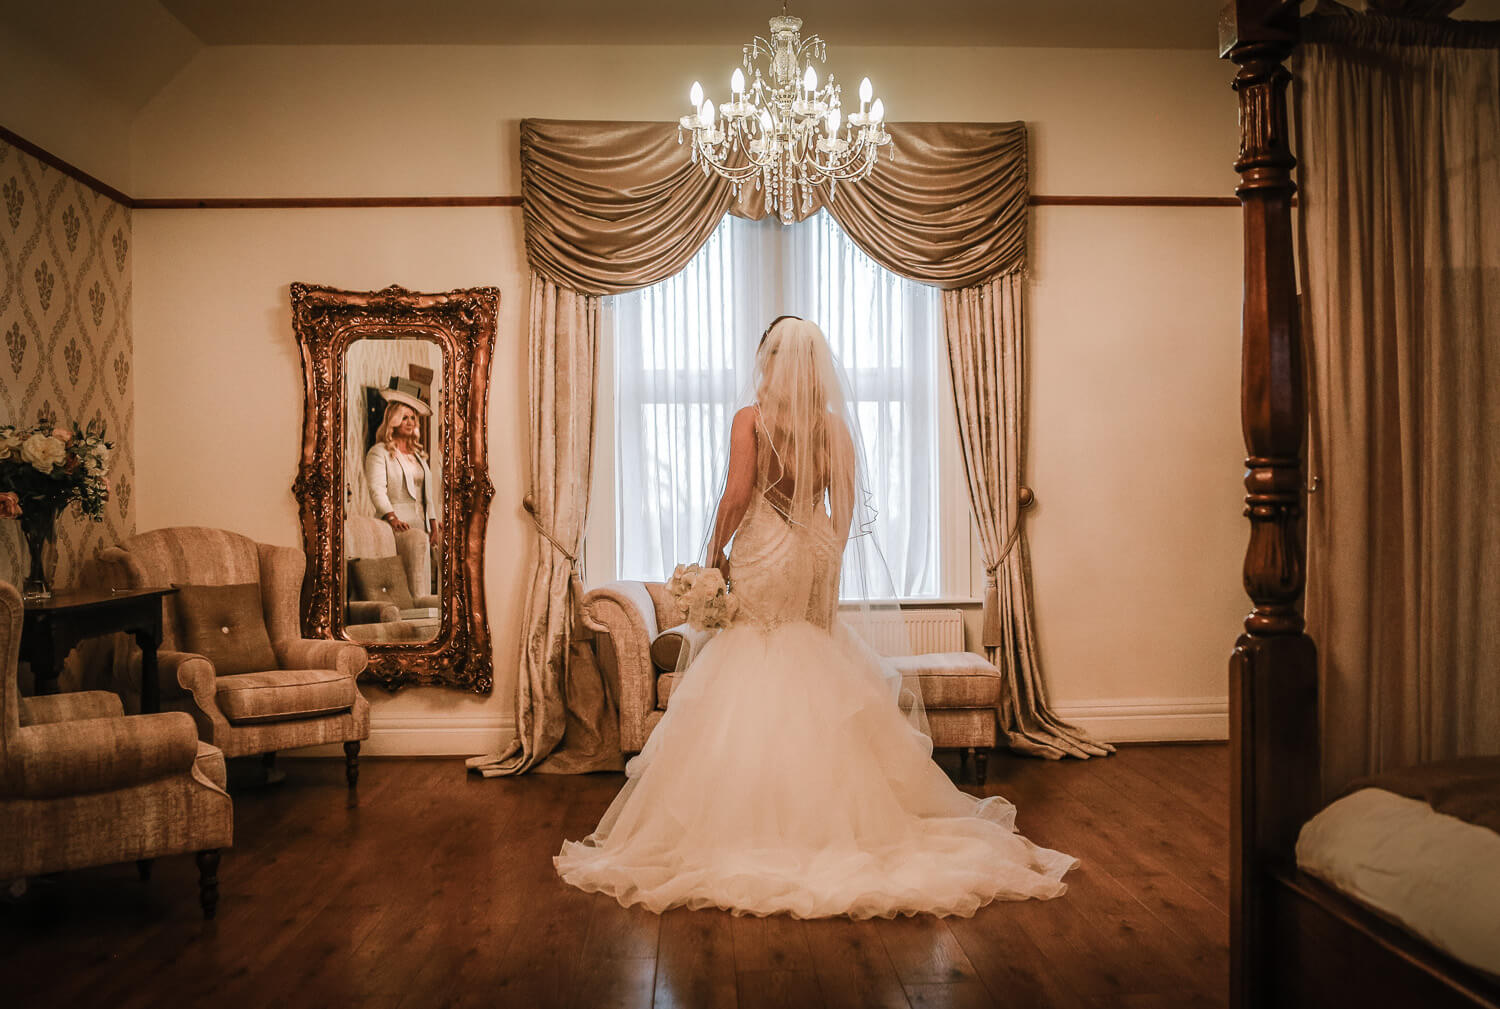 Bride in bridal West tower suite. Back of Maggie Sorretto dress and mum in reflection of mirror on wall